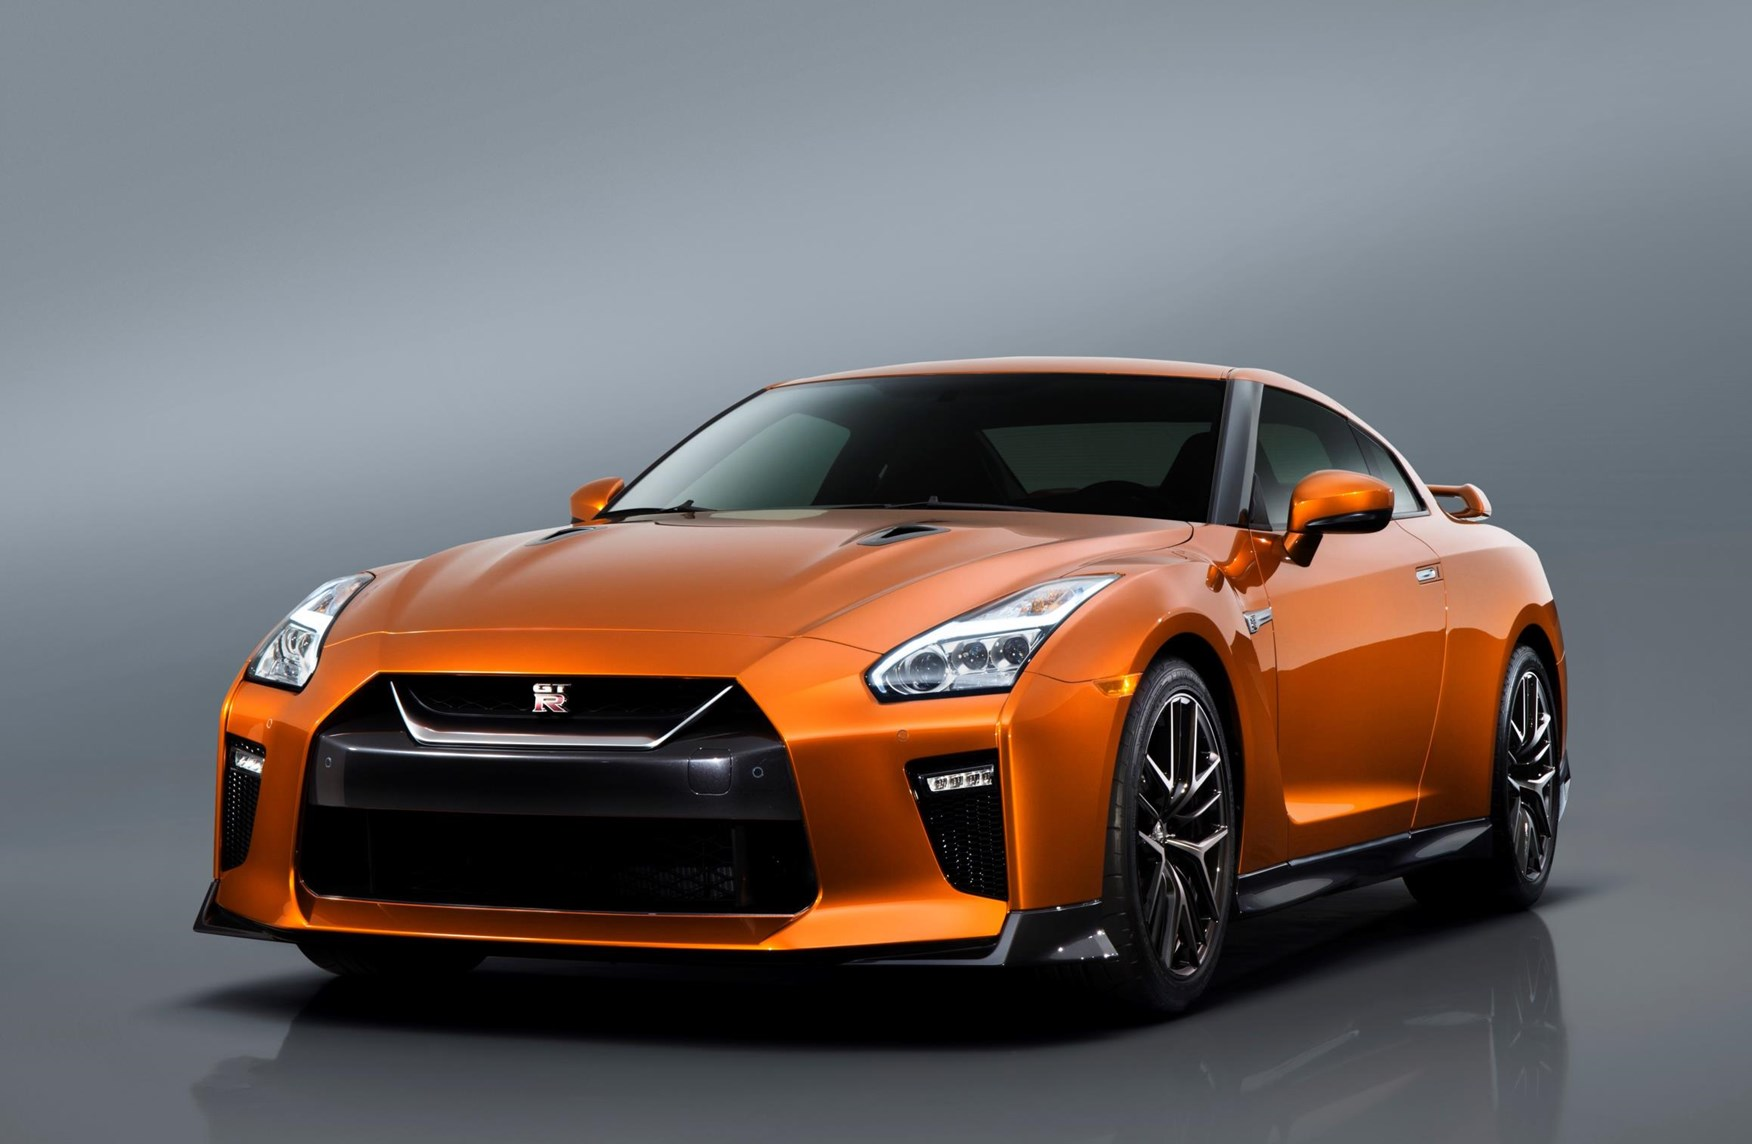 New Larger Chrome Effect Grille Distinguishes Front Of Nissan Gt R